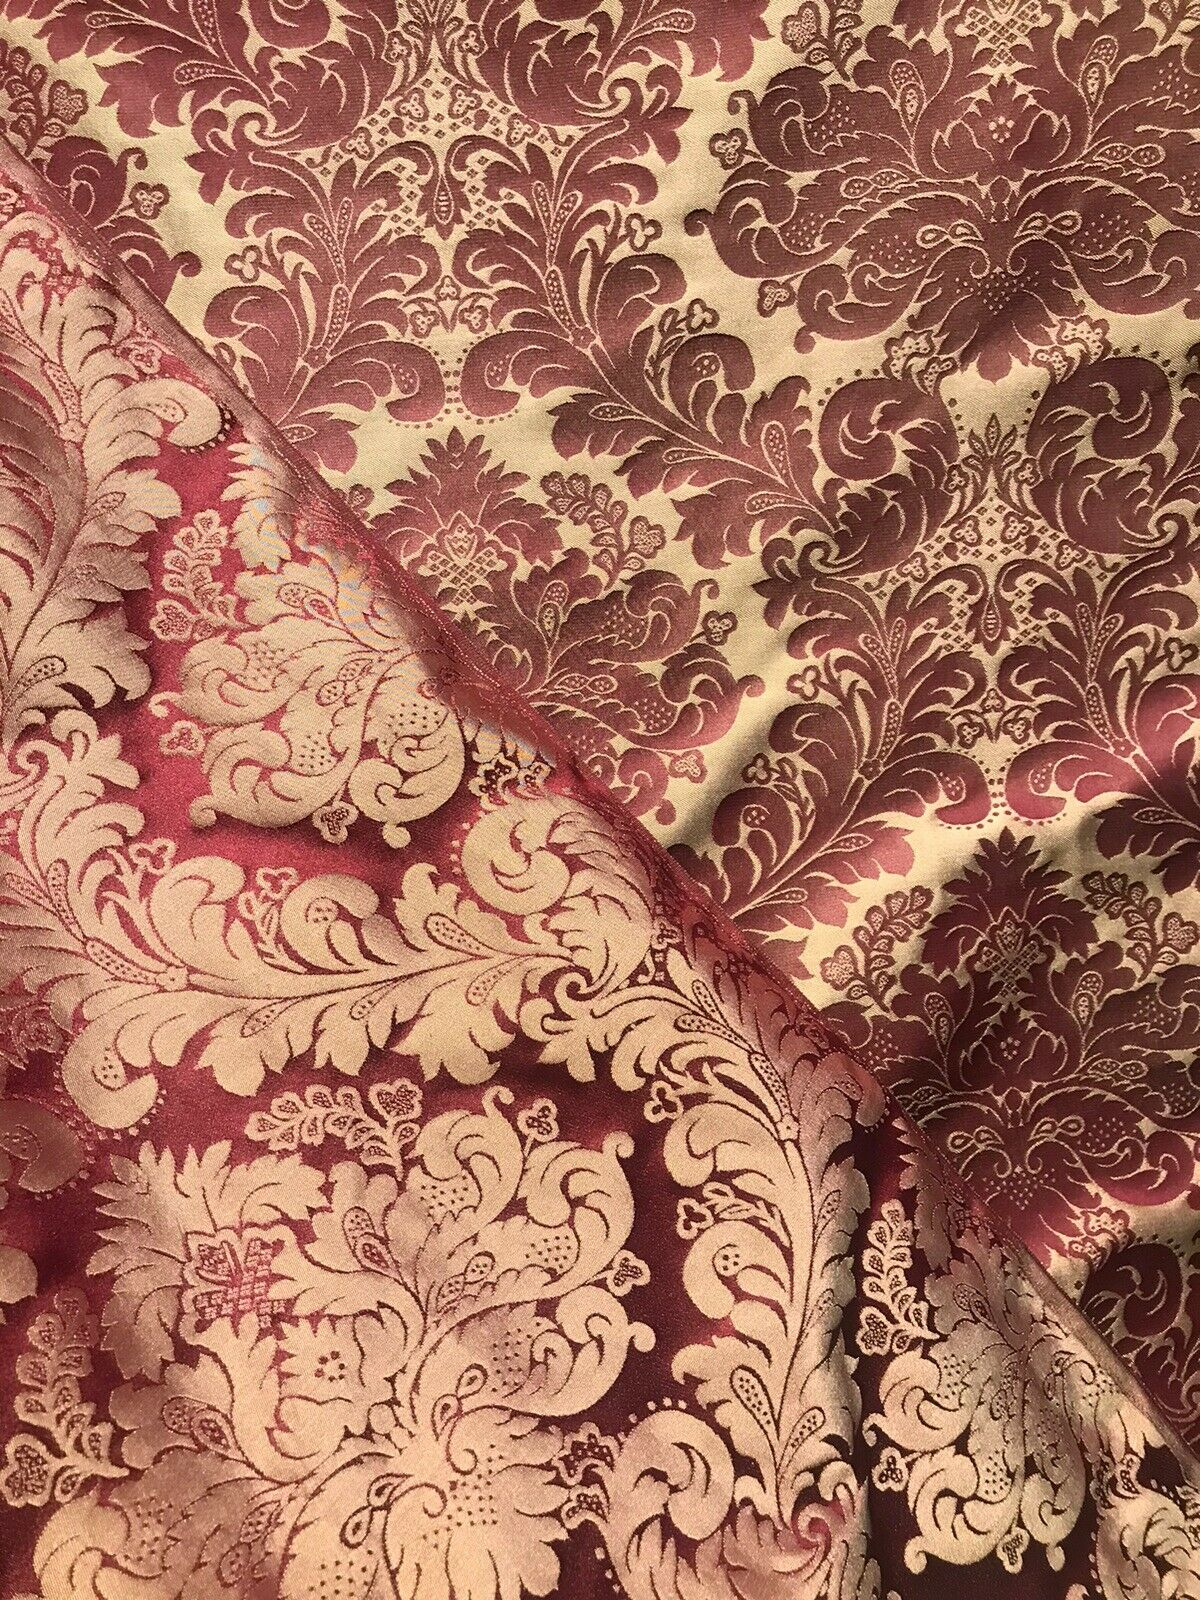 NEW! SALE! 100% Silk Taffeta Neoclassical Fabric - Antique Red & Gold Damask BTY LLSUR0005